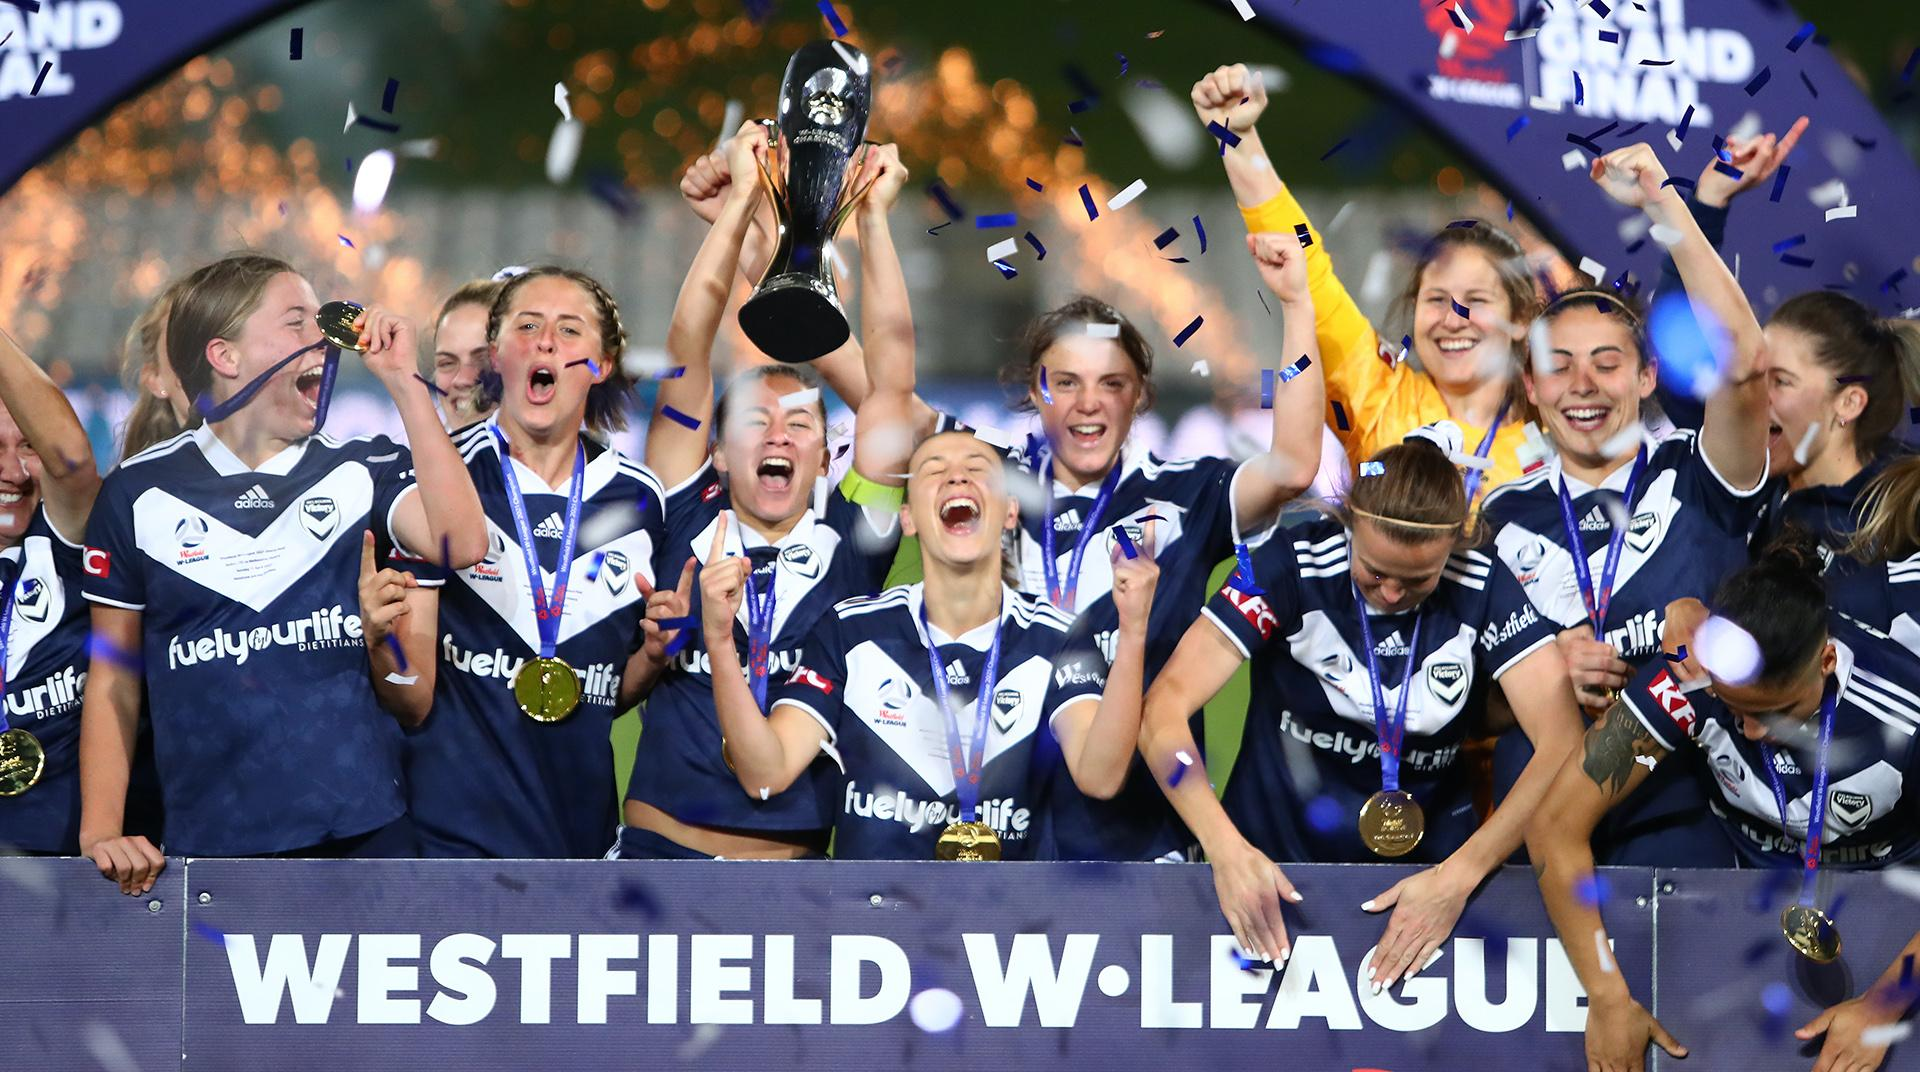 Melbourne Victory lifting the Westfield W-League trophy